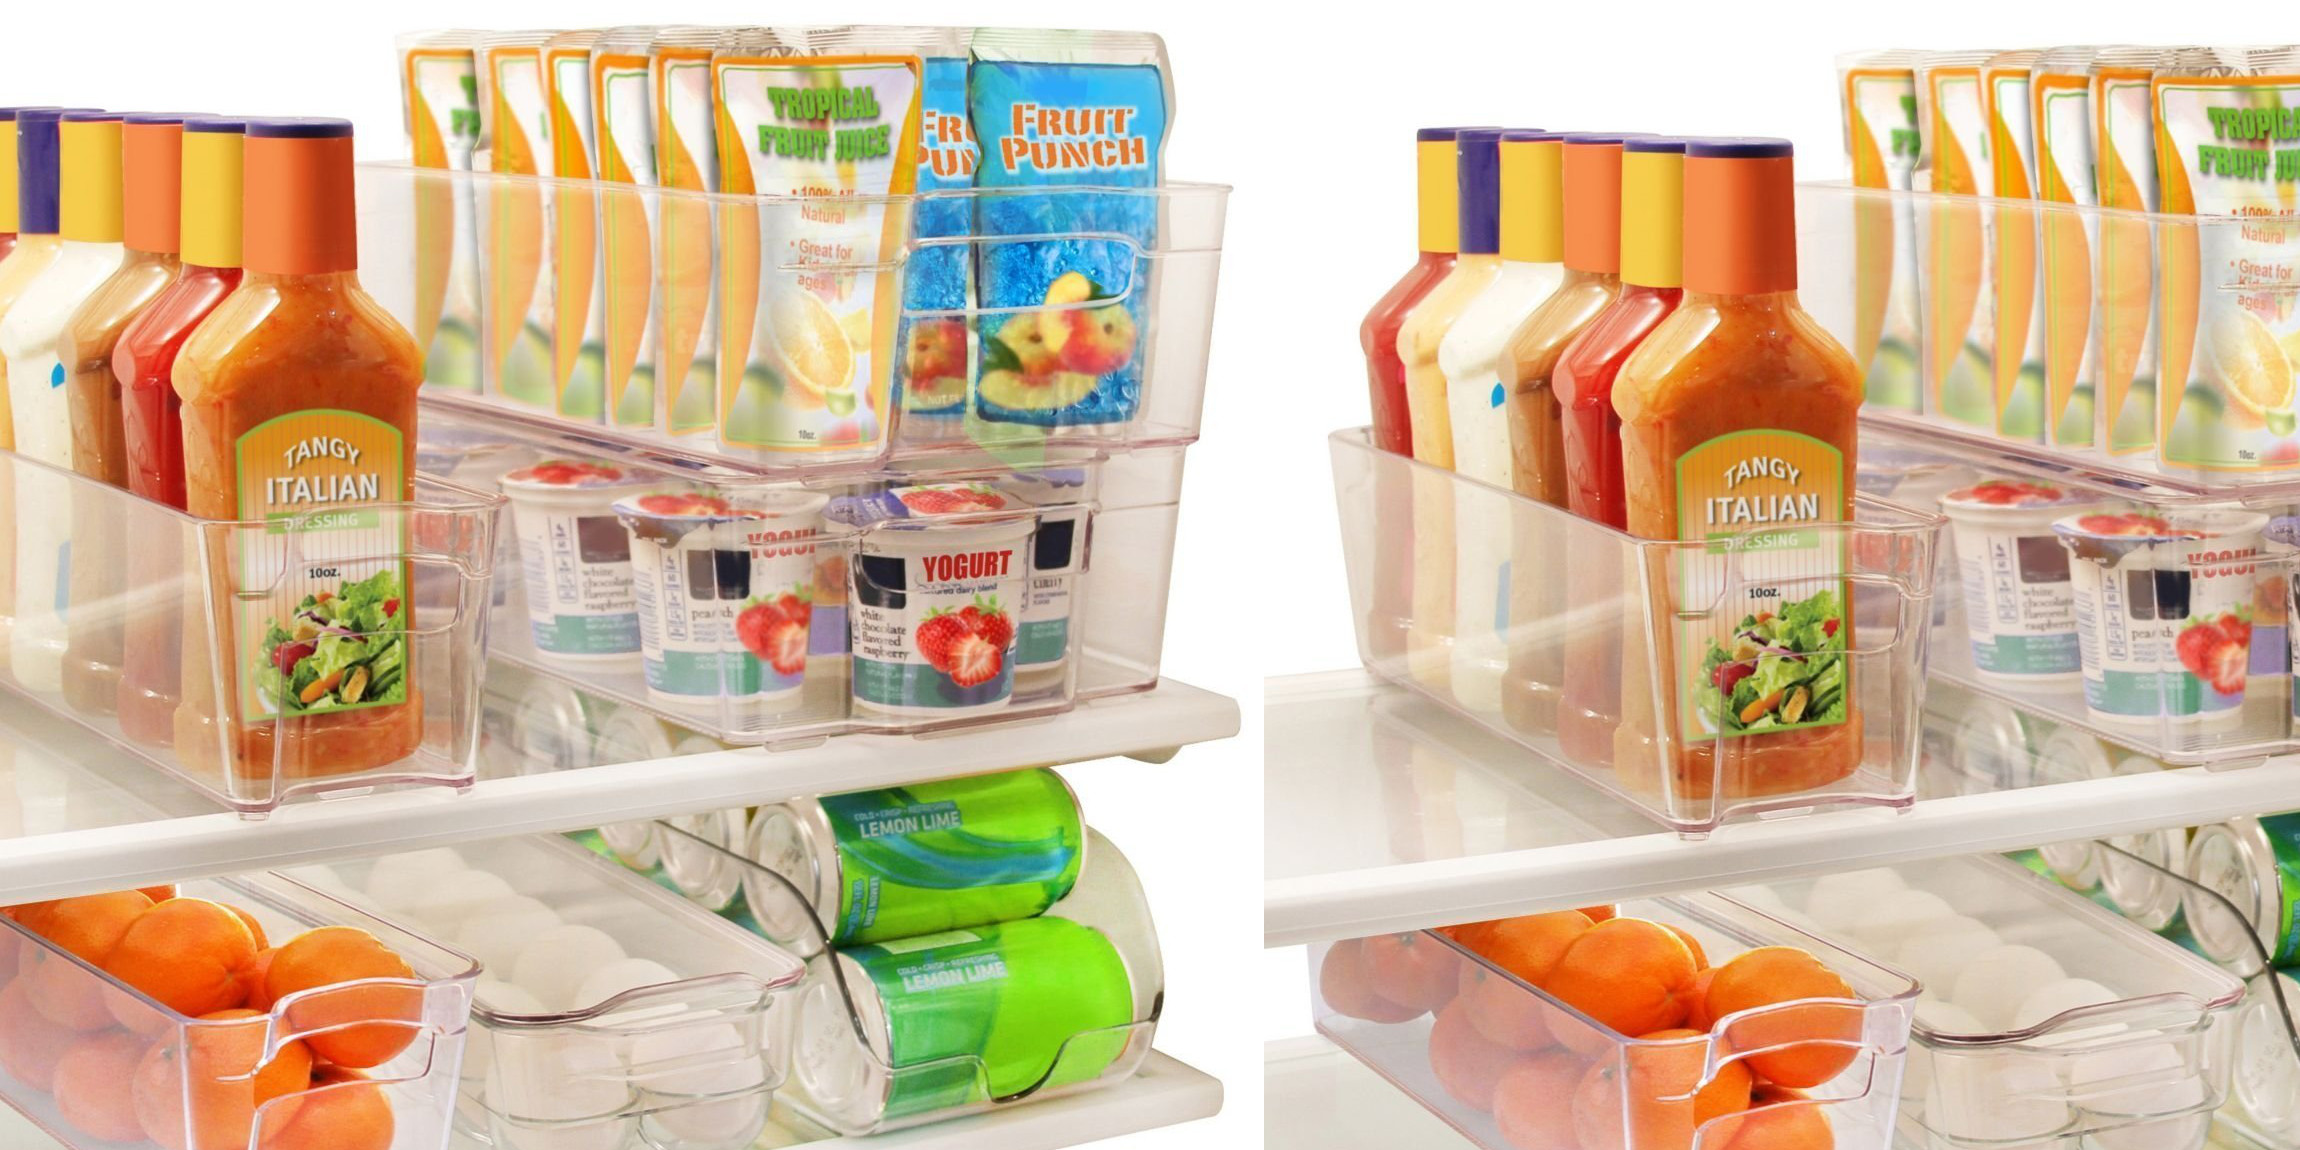 Keep your fridgefreezer tidy w these Greenco Stackable Bins 26